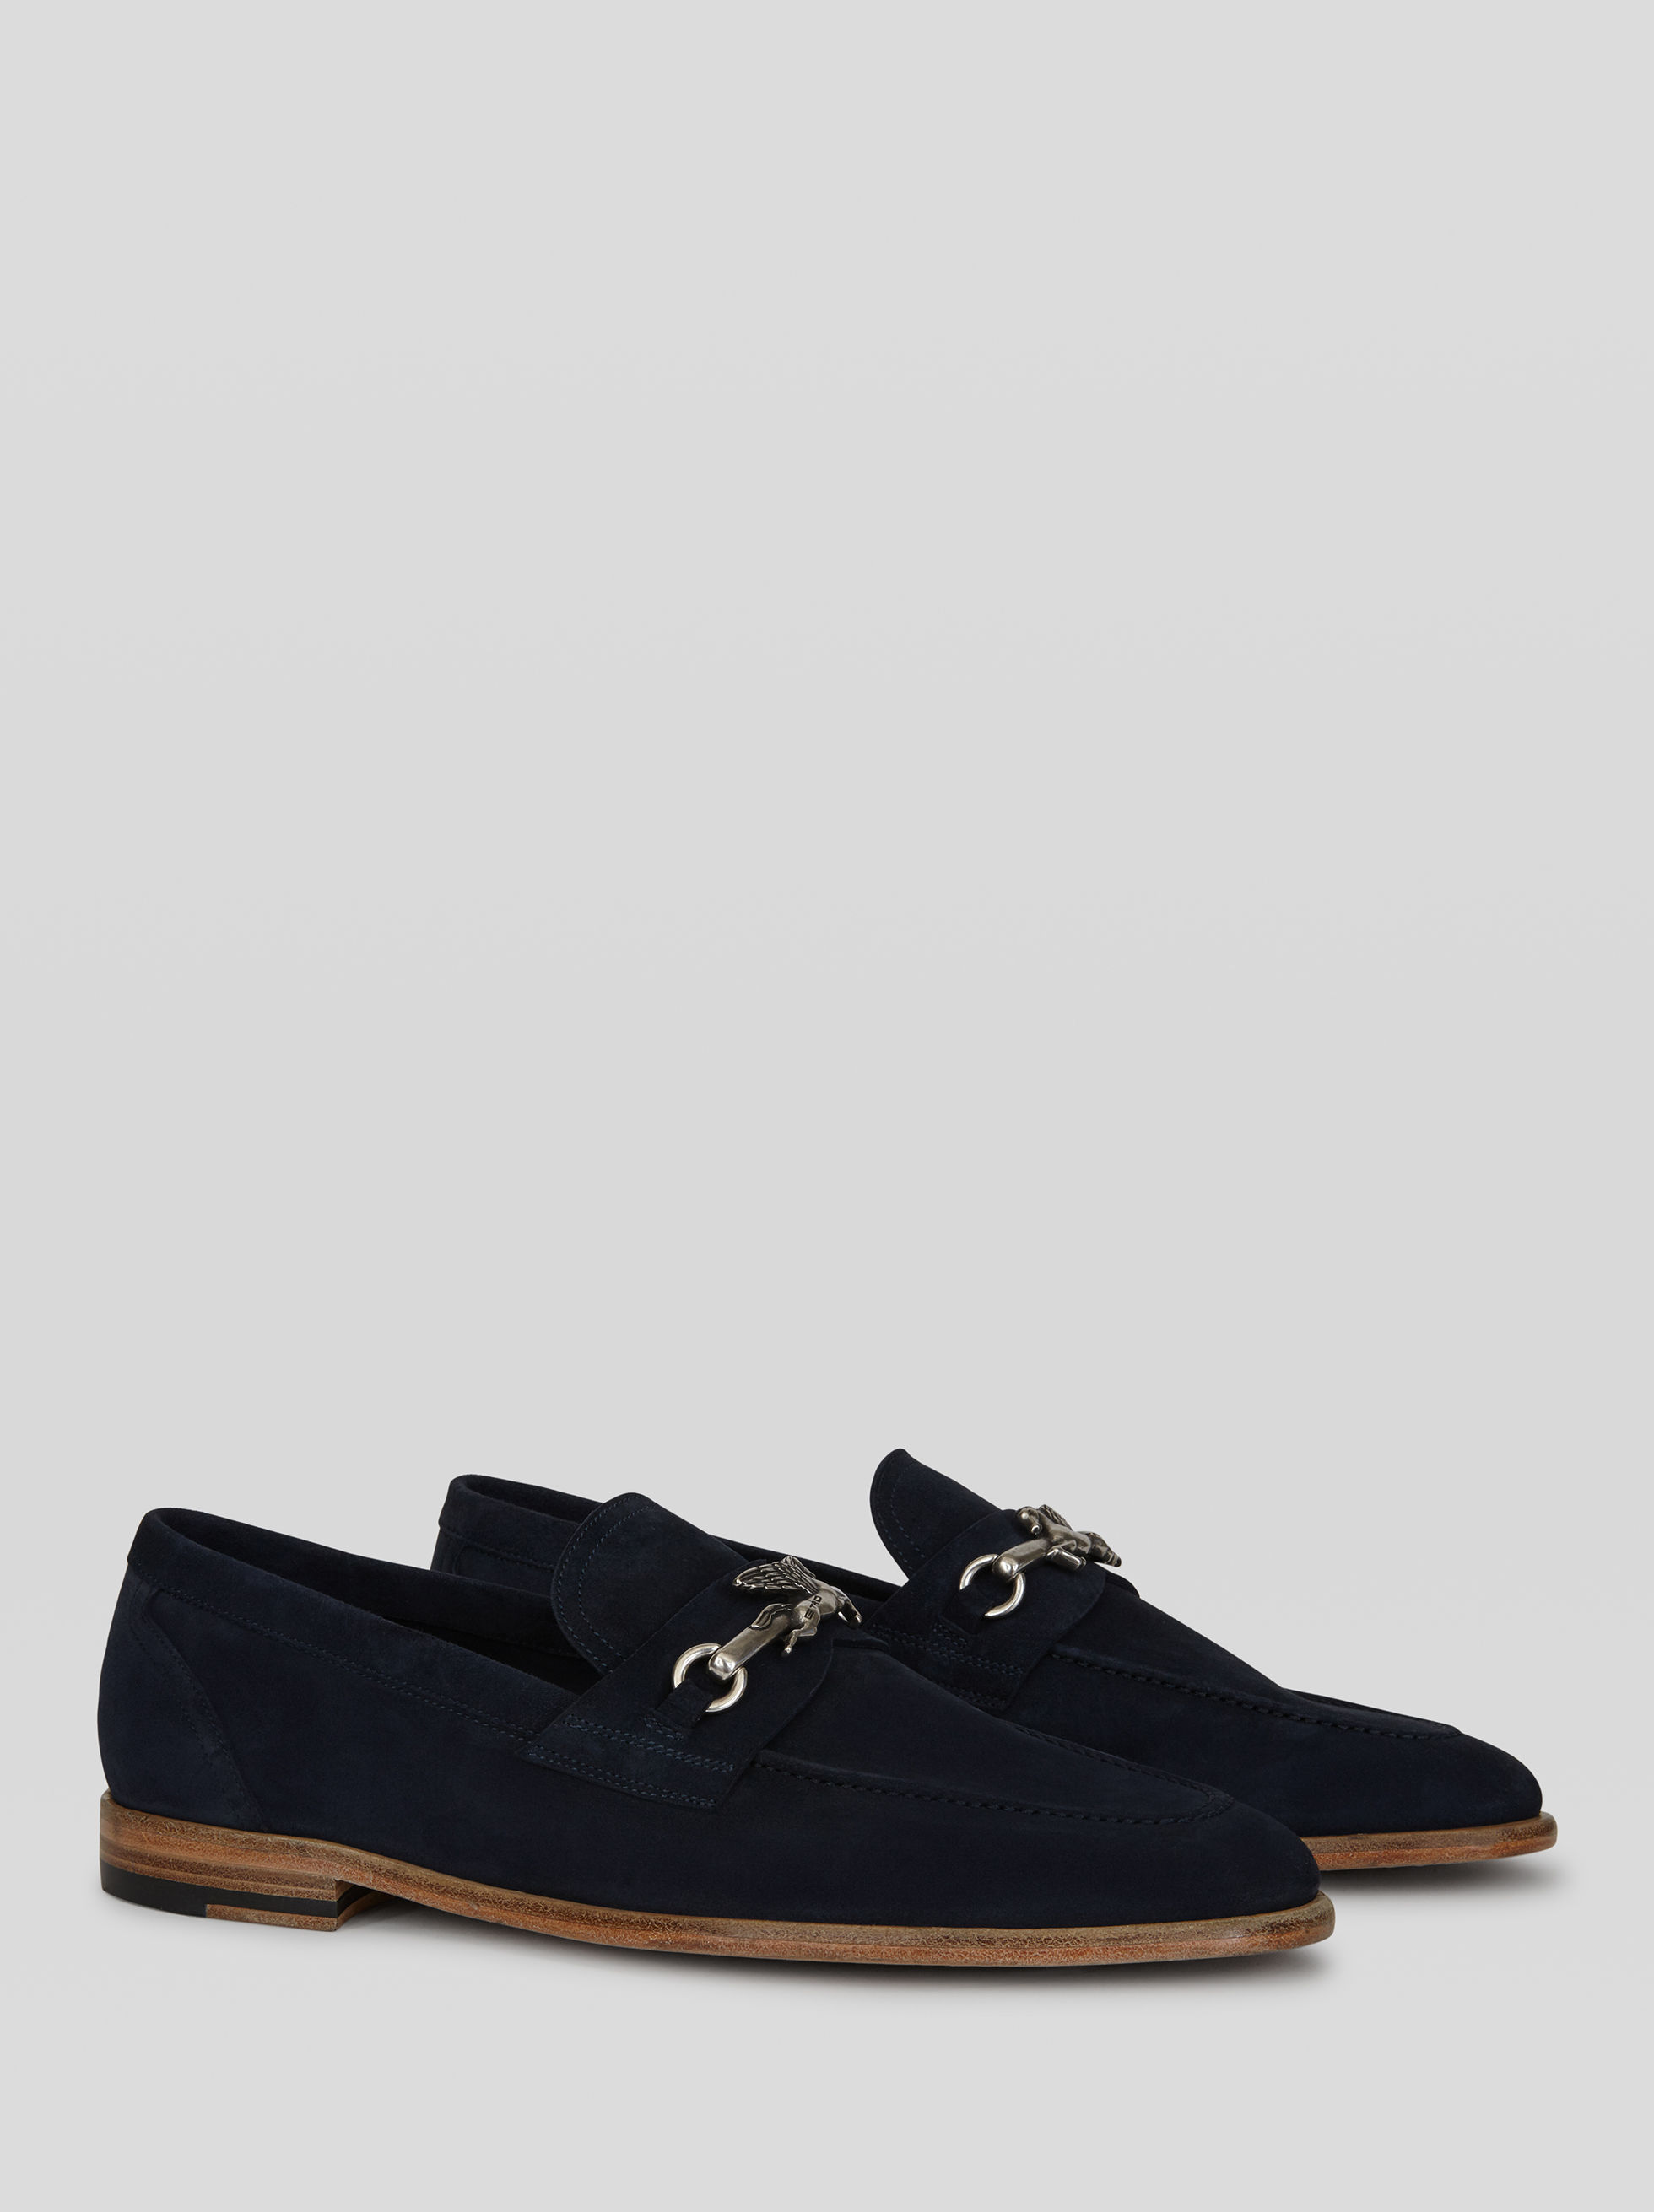 SUEDE MOCCASINS WITH PEGASO